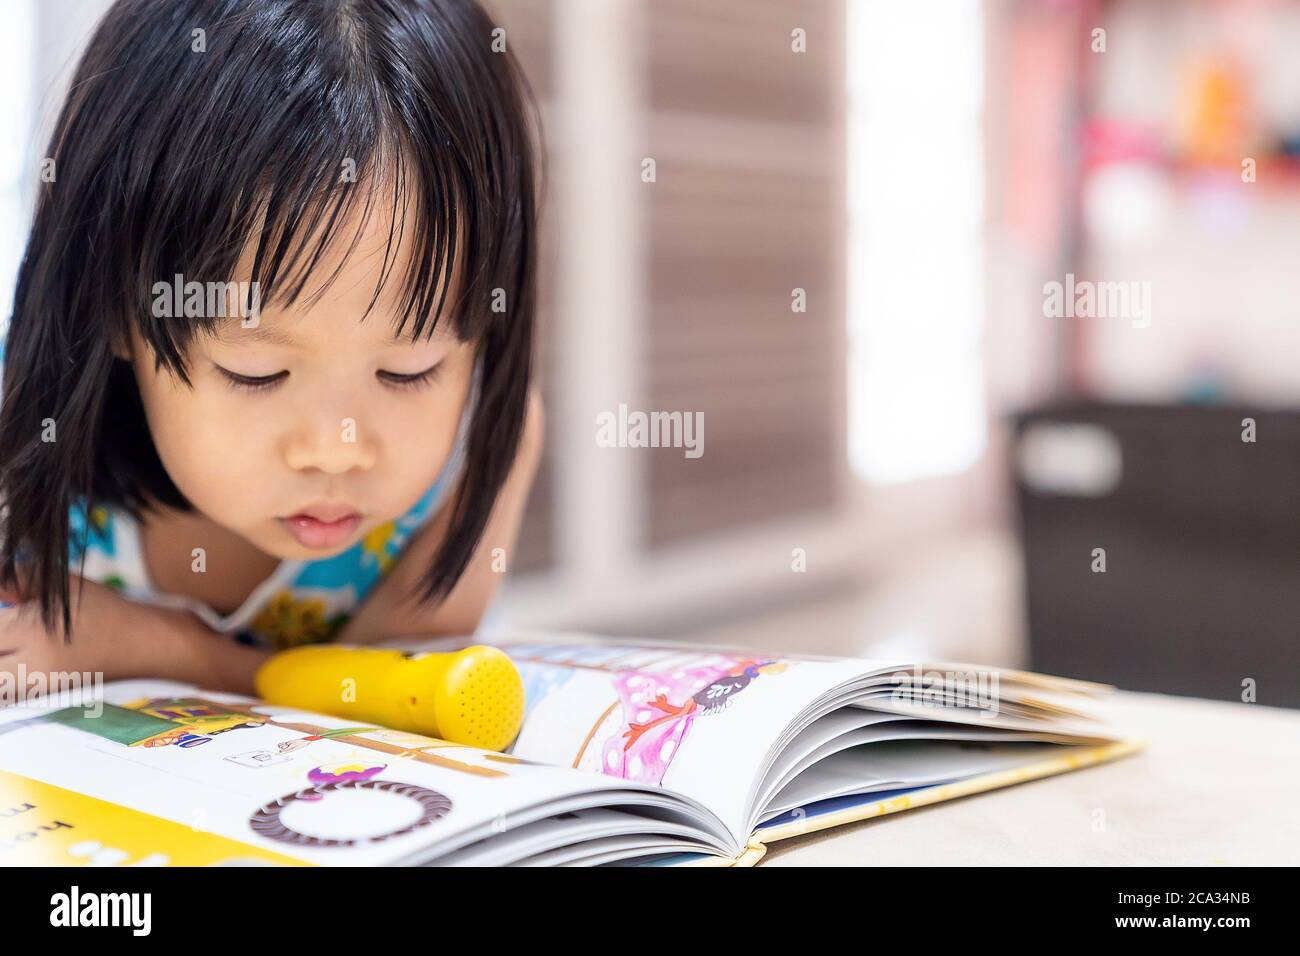 Asian girl child reading interactive book in living room at home as home schooling while city lockdown because of covid-19 pandemic across the world. Stock Photo